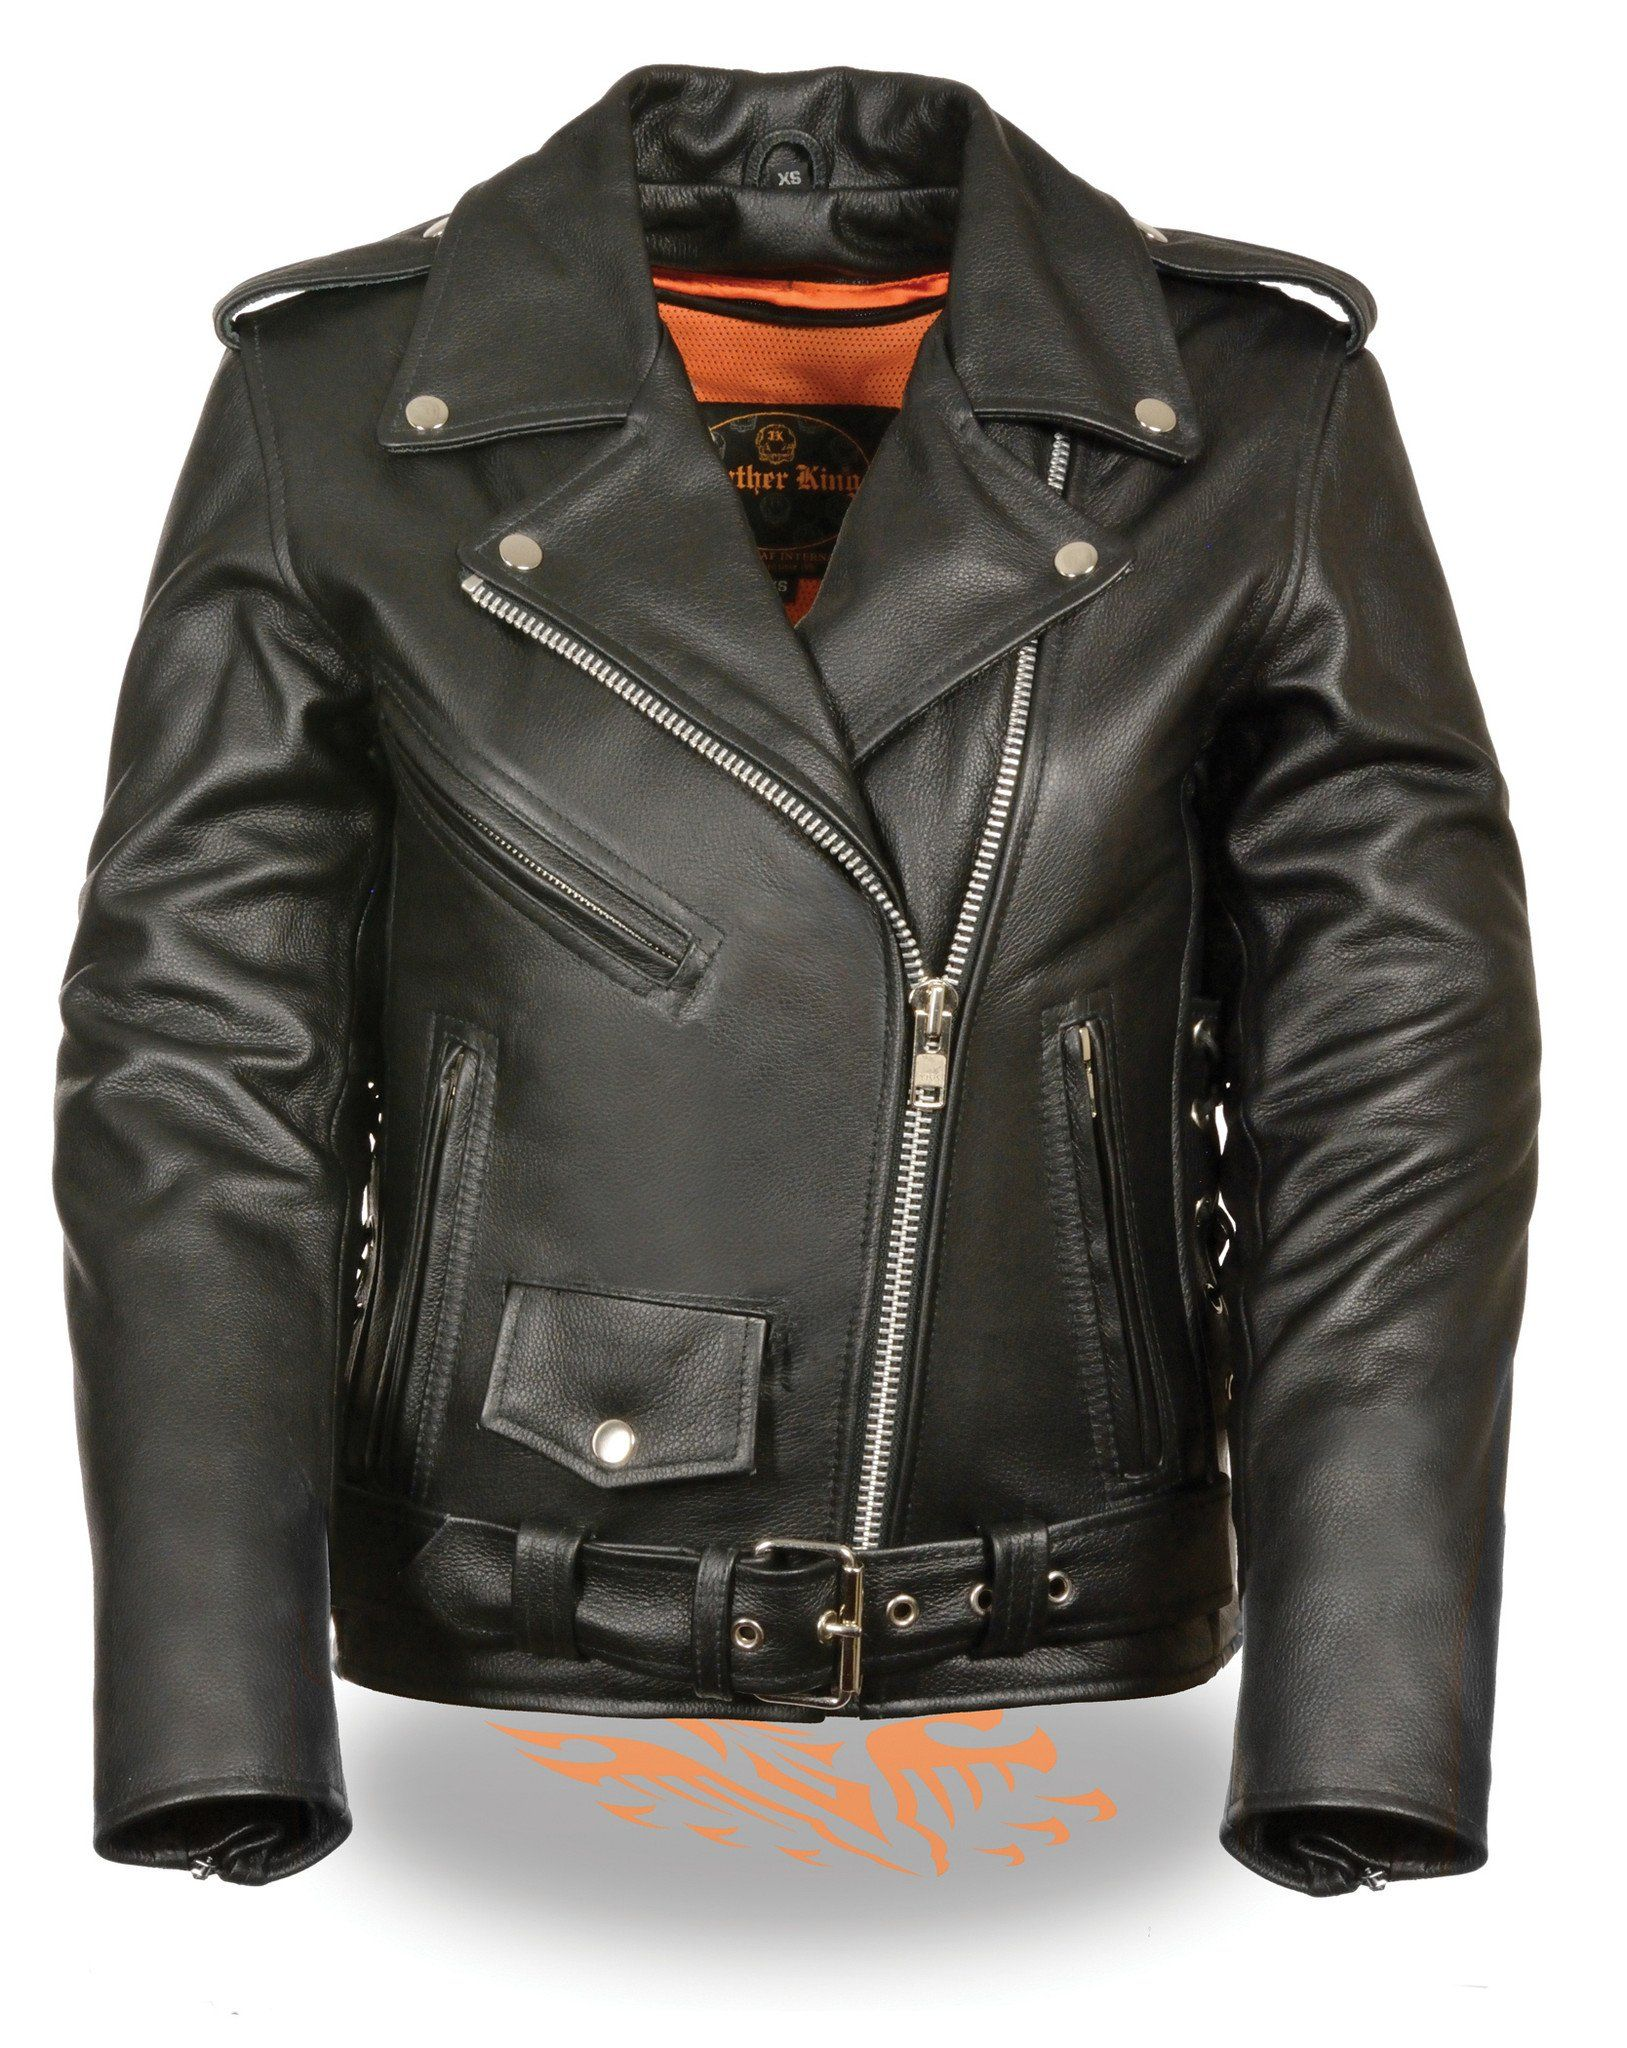 WOMEN'S MOTORCYCLE TRADITIONAL POLICE LEATHER JACKET